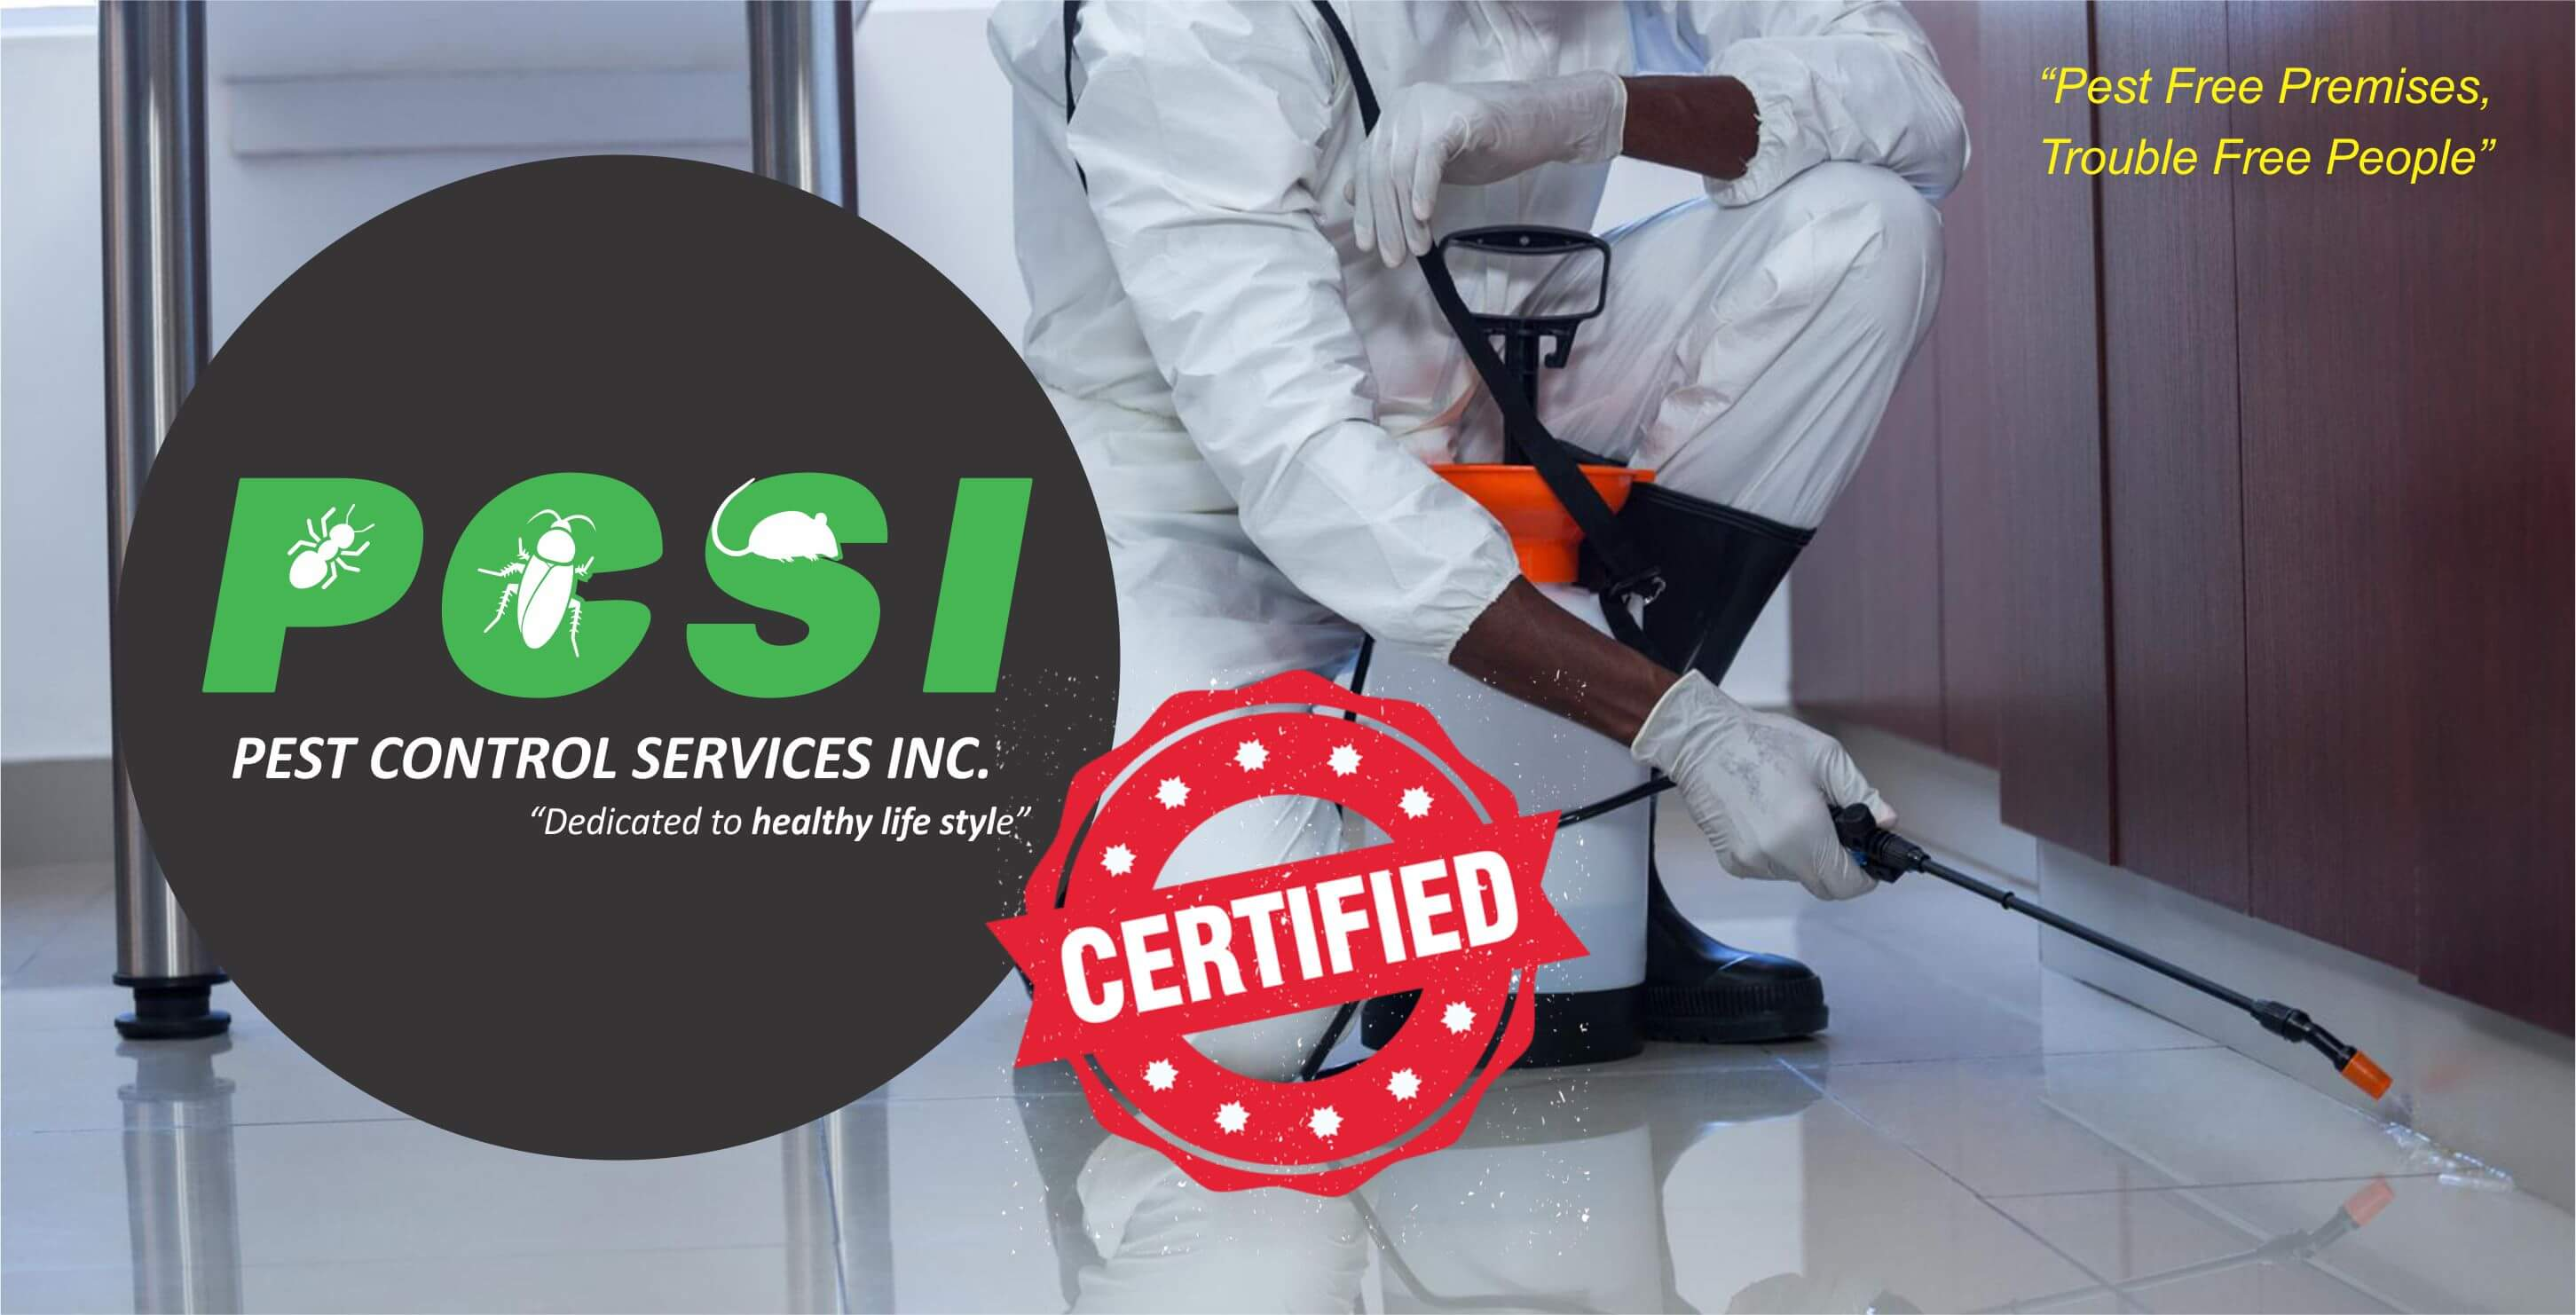 pest control certified company in Indore mp India